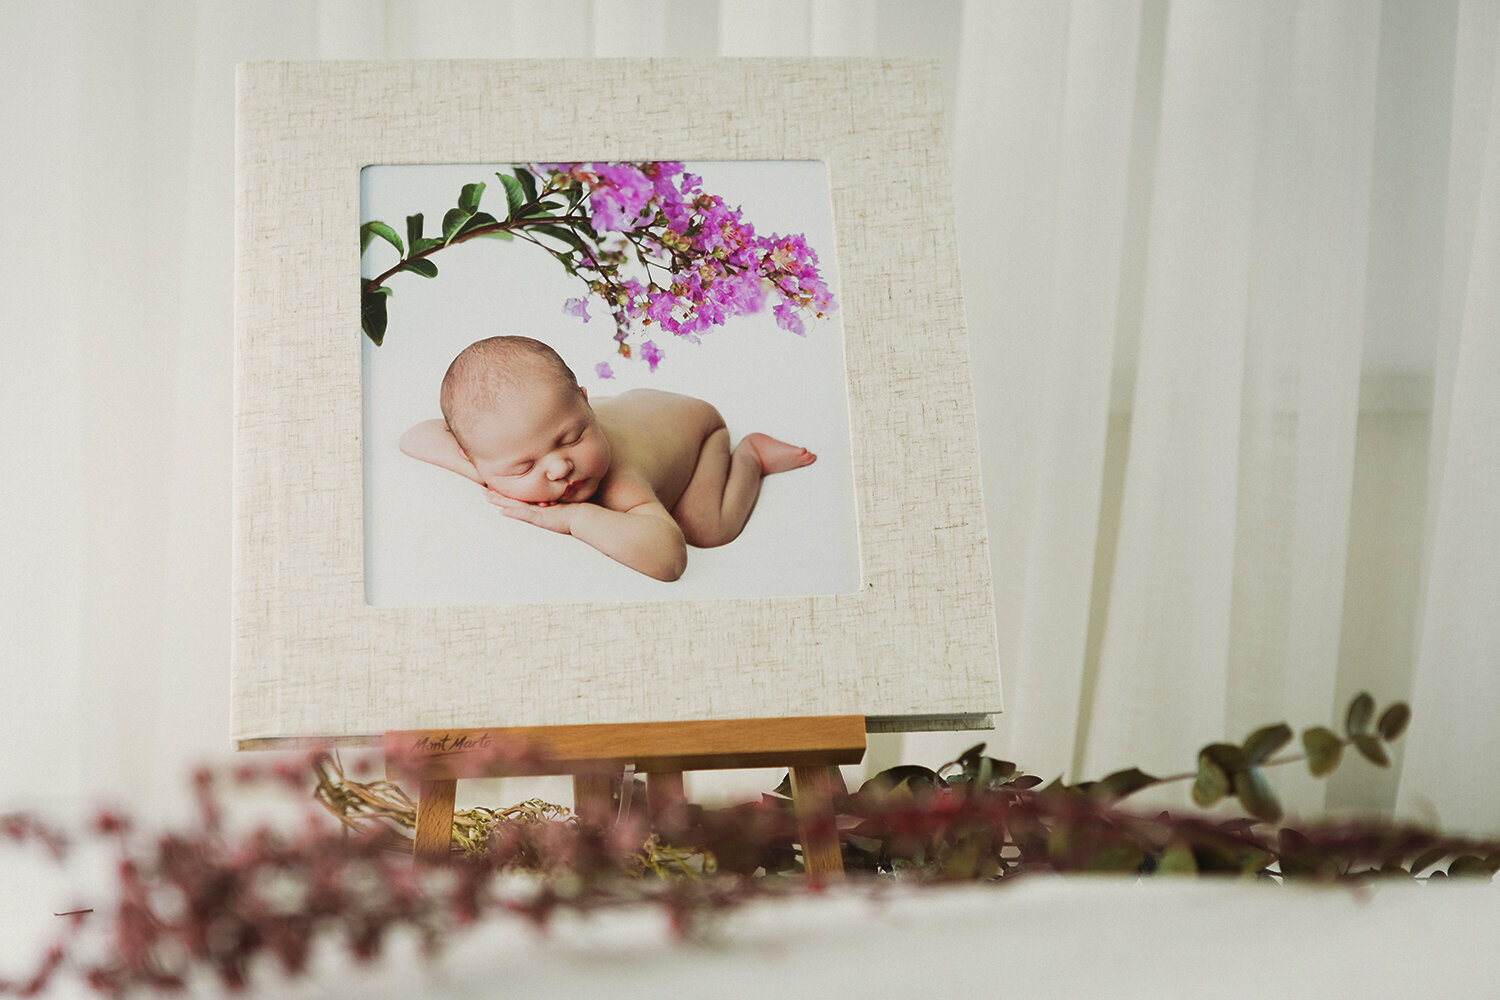 Product example of flushmount album featuring professional newborn photography